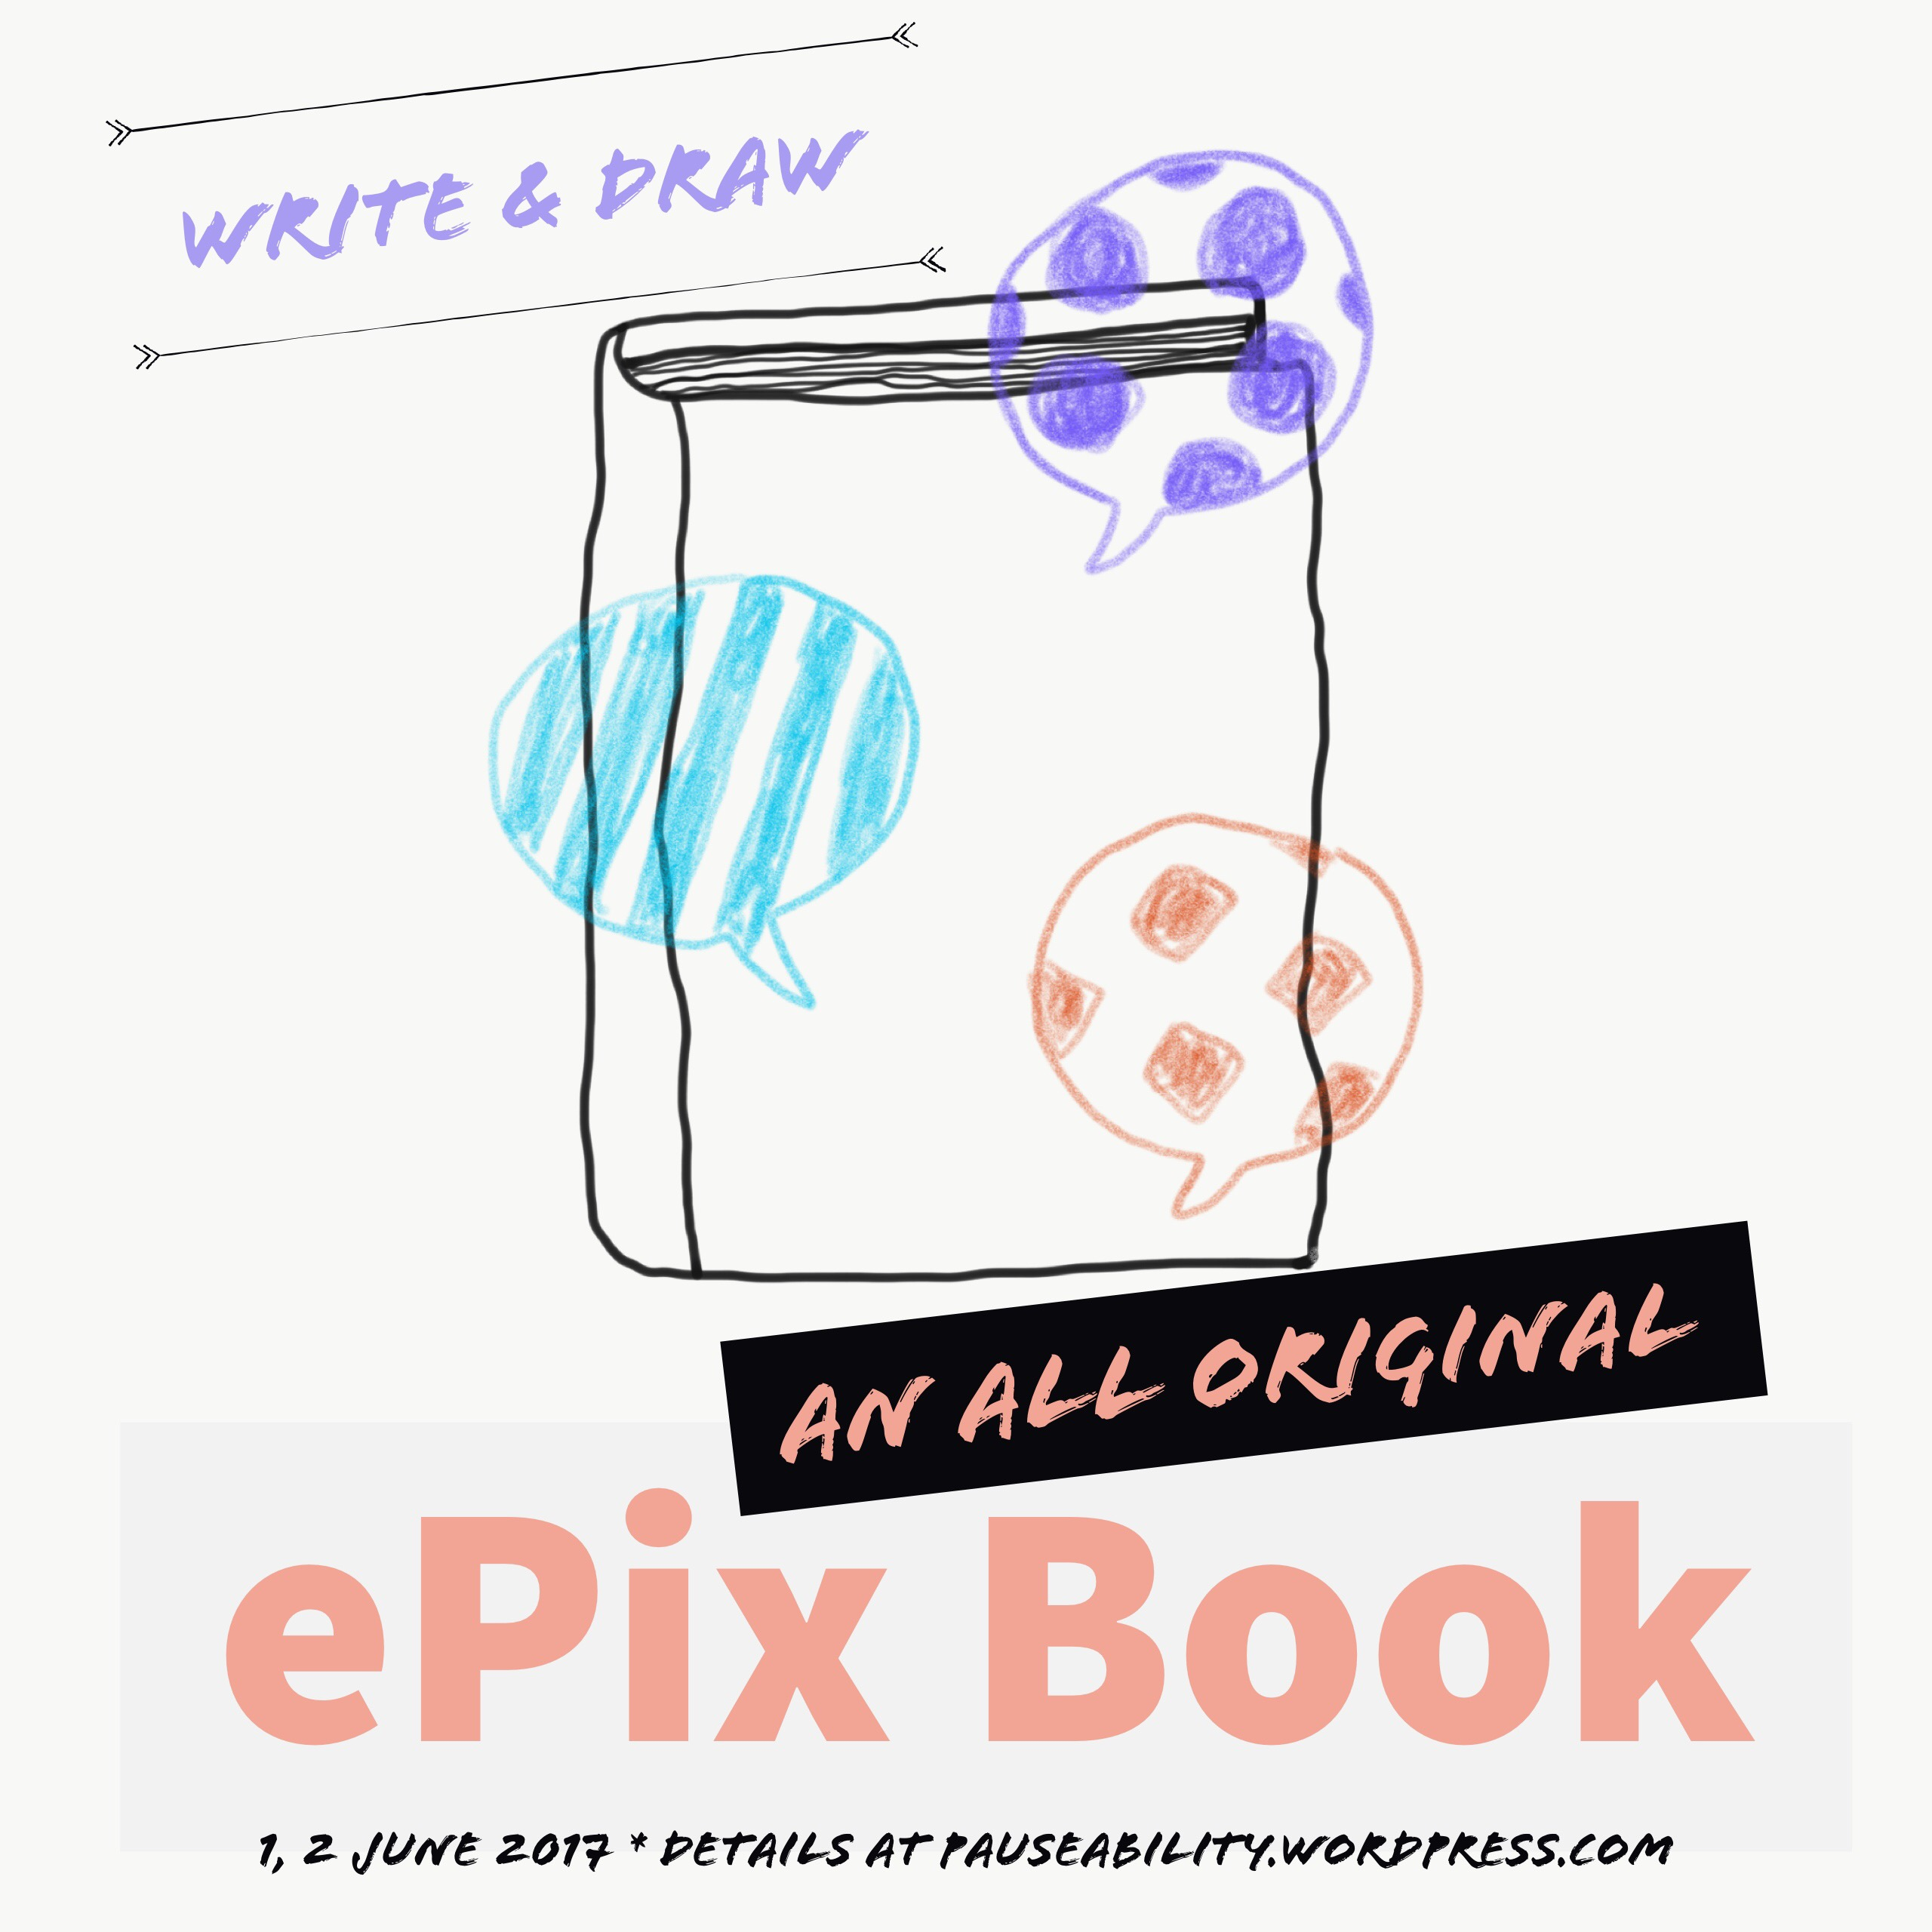 This June: Write & Draw an ePix Book